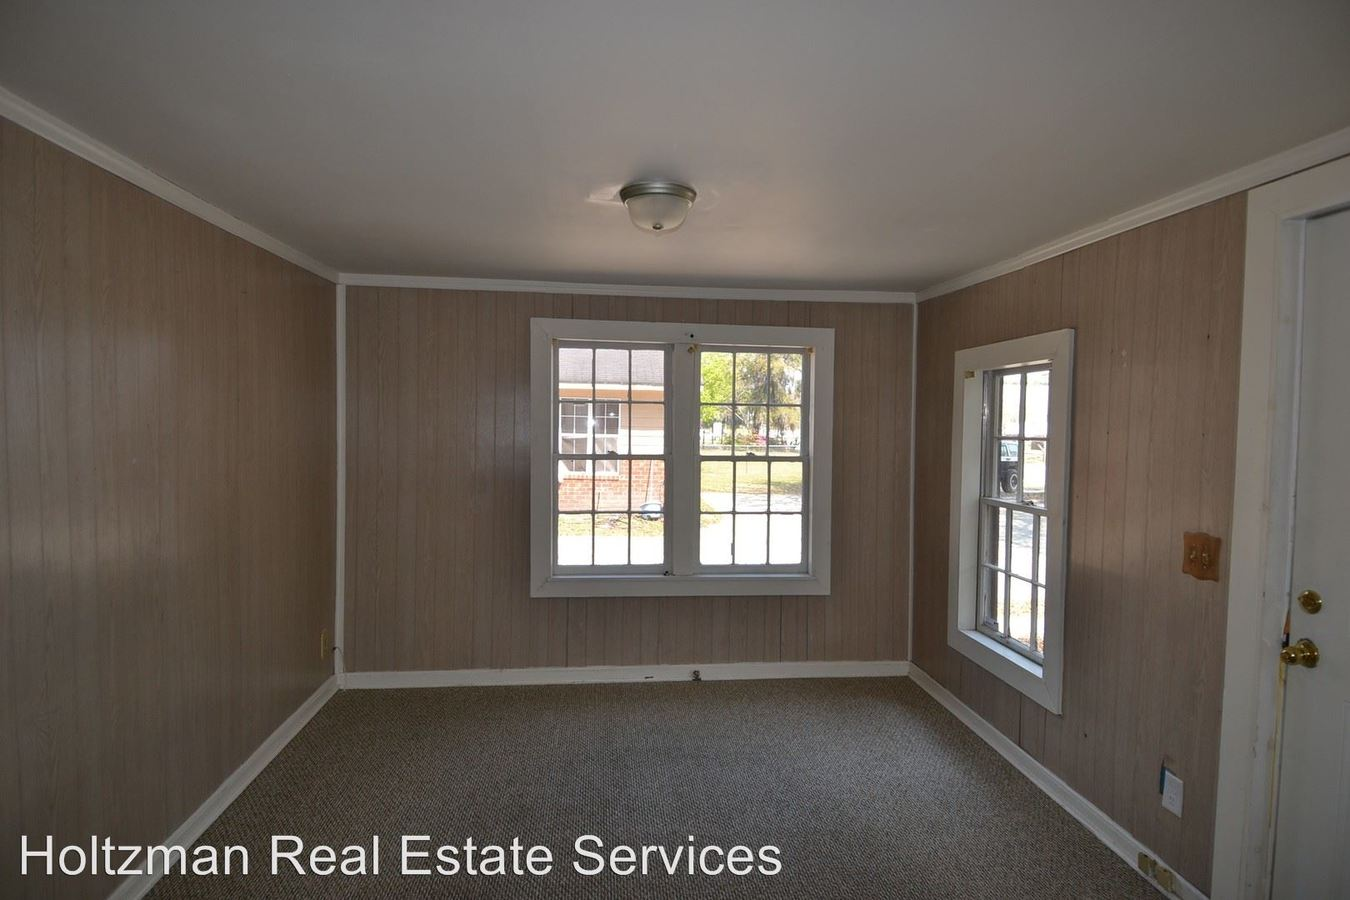 3 Bedrooms 1 Bathroom Apartment for rent at 103 Welborn Street in Hinesville, GA